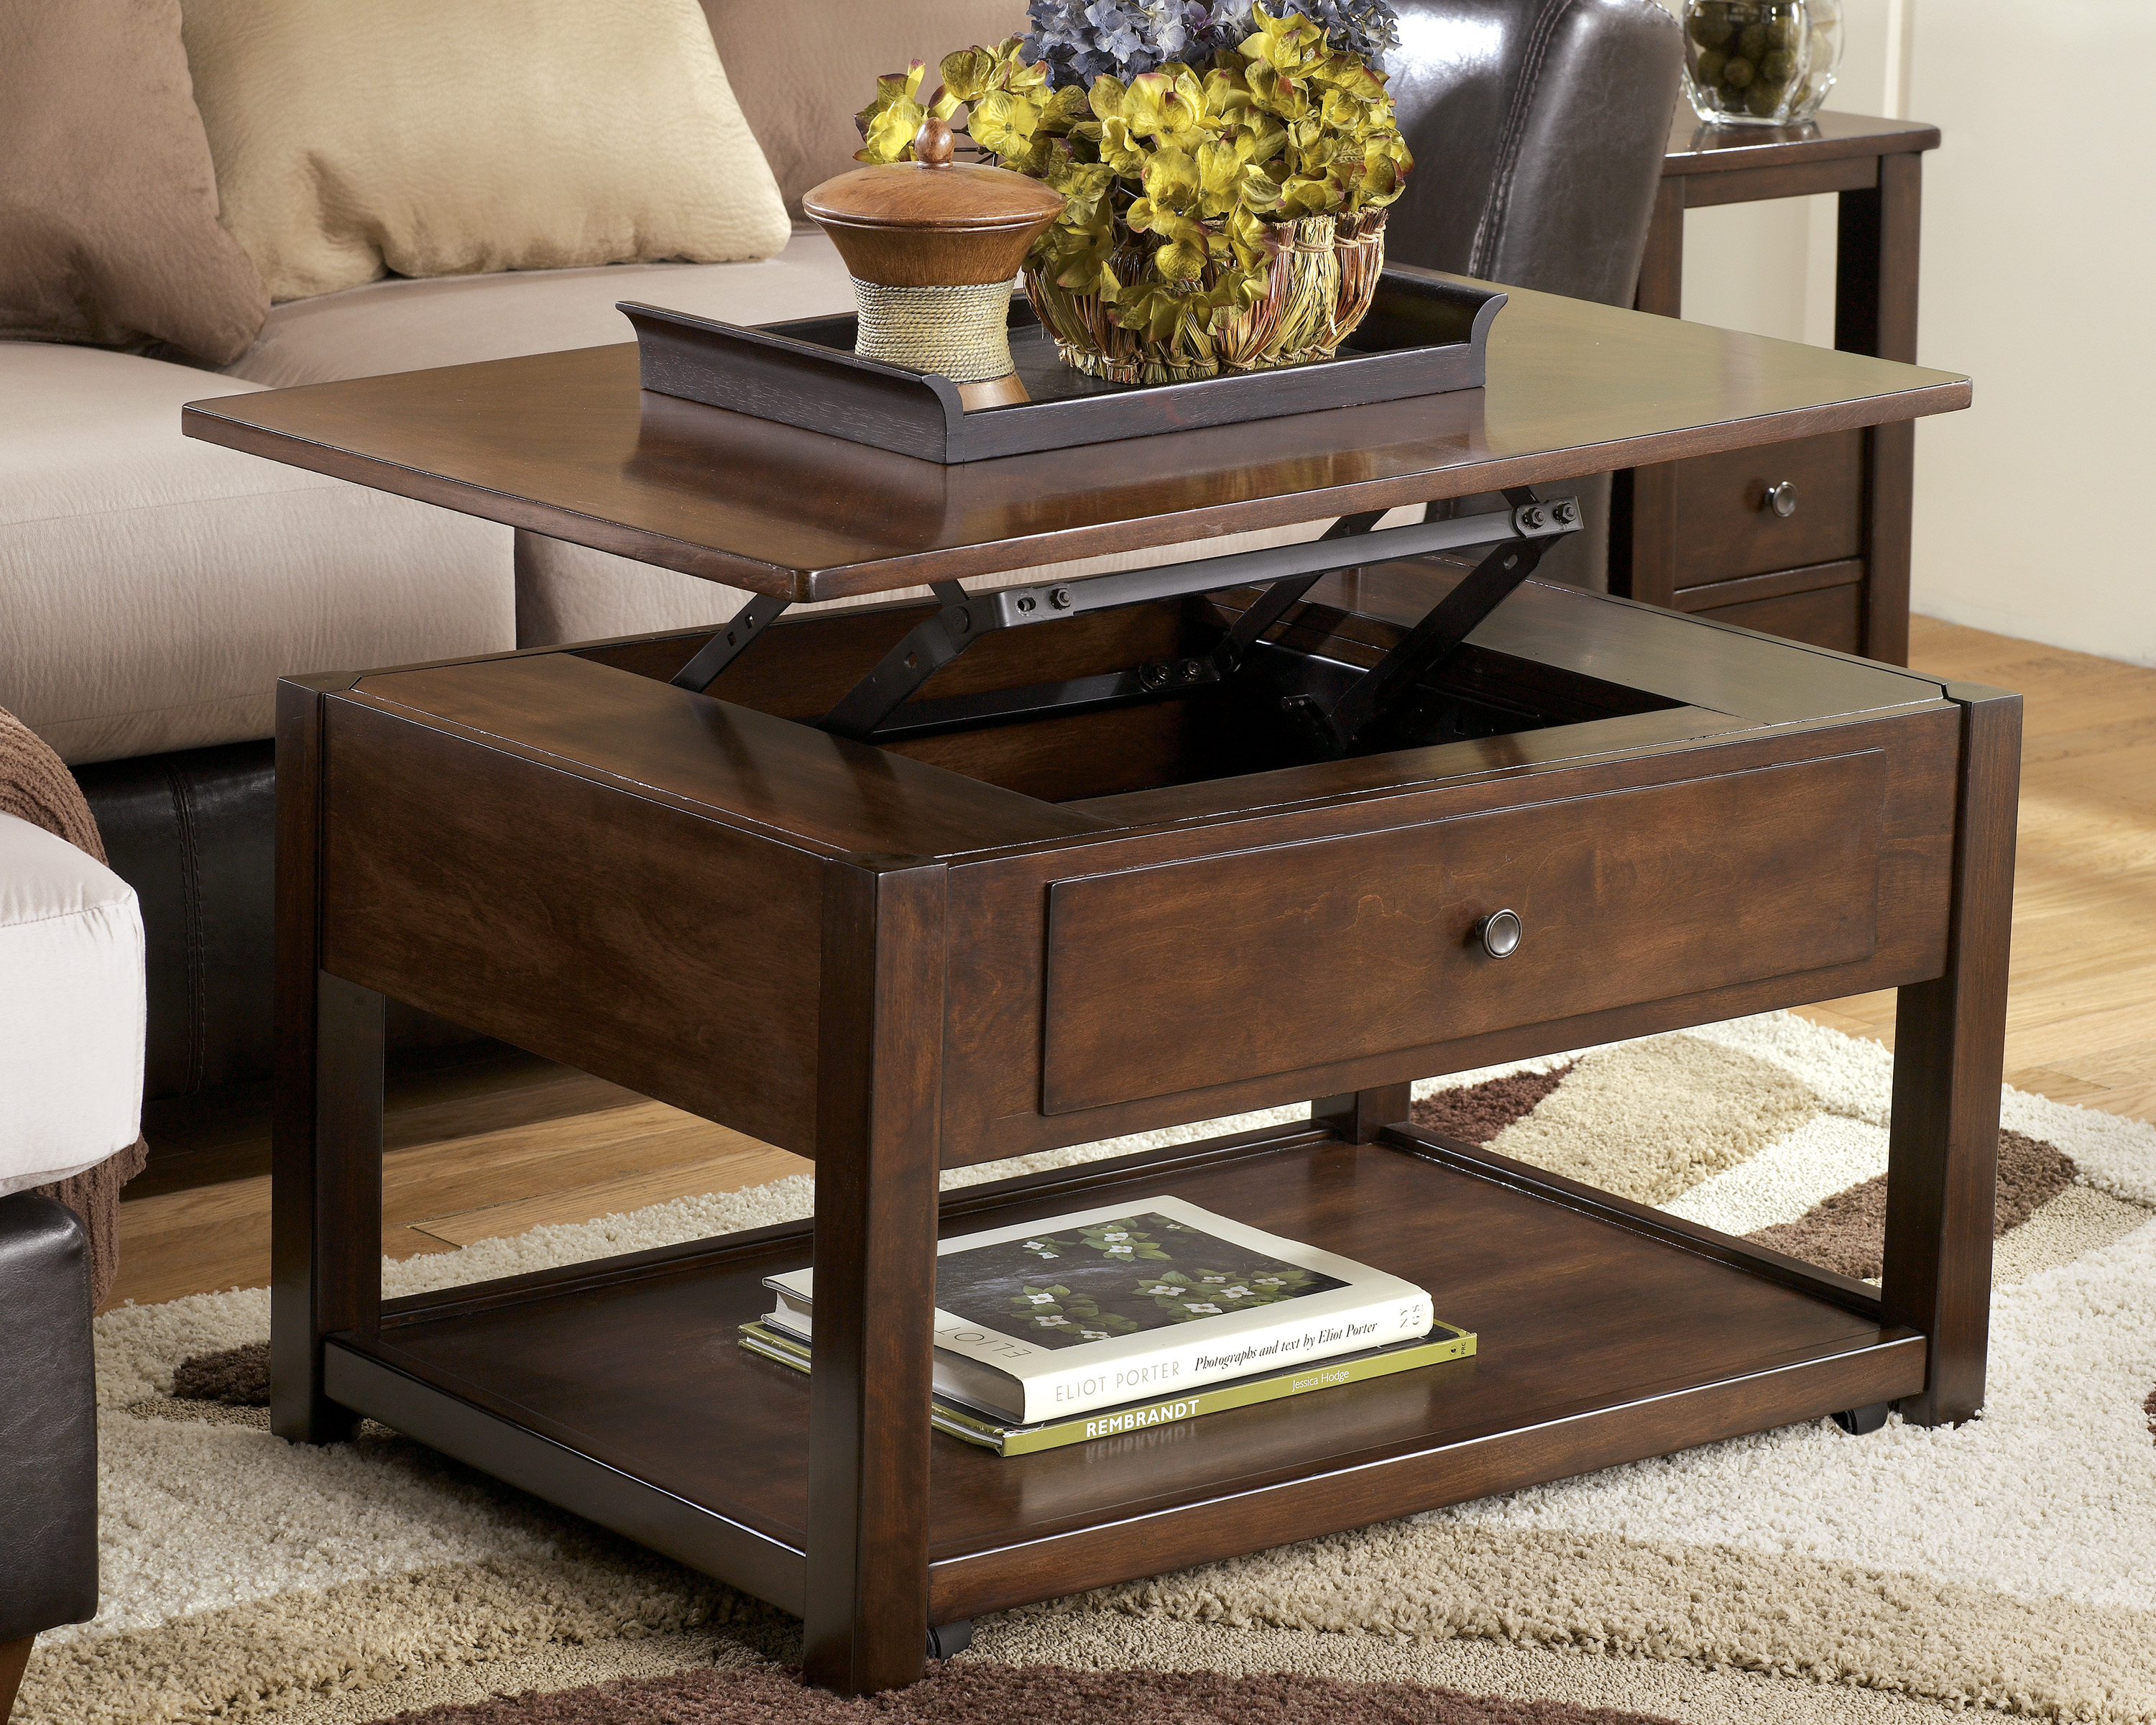 tier end table the outrageous cool ashley home furniture lift top coffee tables open iron glass three piece living room set inch high nightstand wood plank wall mounted bathroom